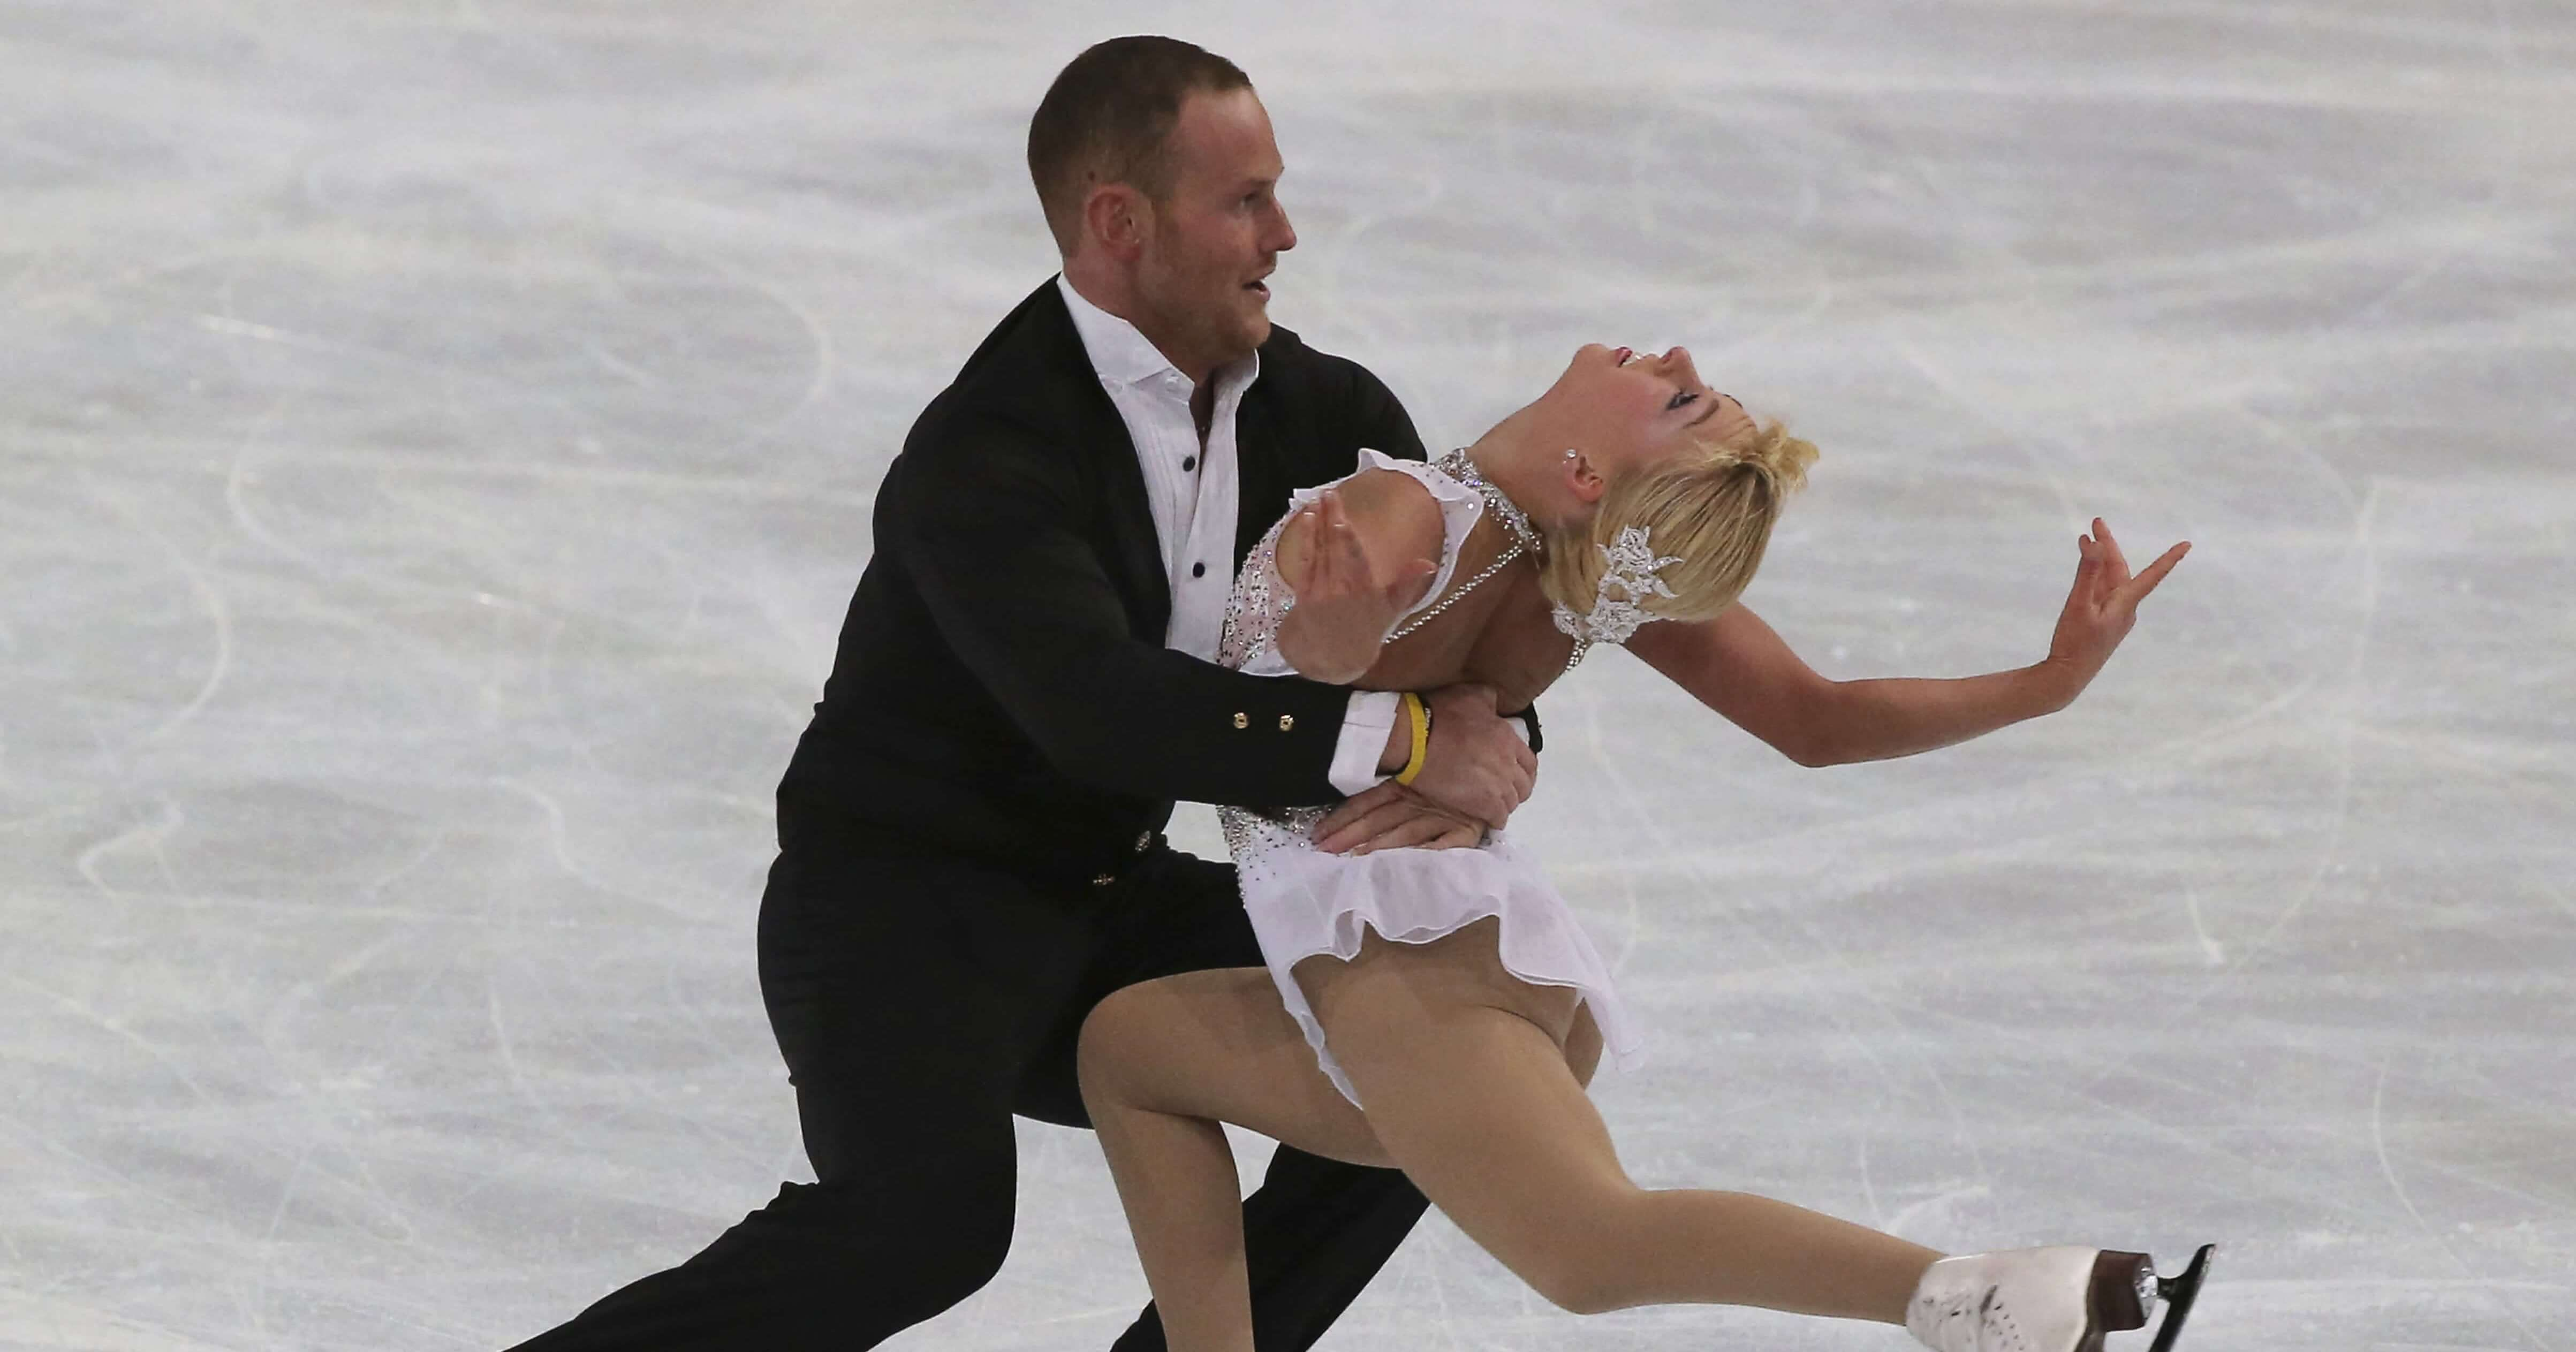 Caydee Denney and John Coughlin perform in the pairs free skate at the ISU Figure Skating Eric Bompard Trophy on Nov. 16, 2013, at Bercy arena in Paris.